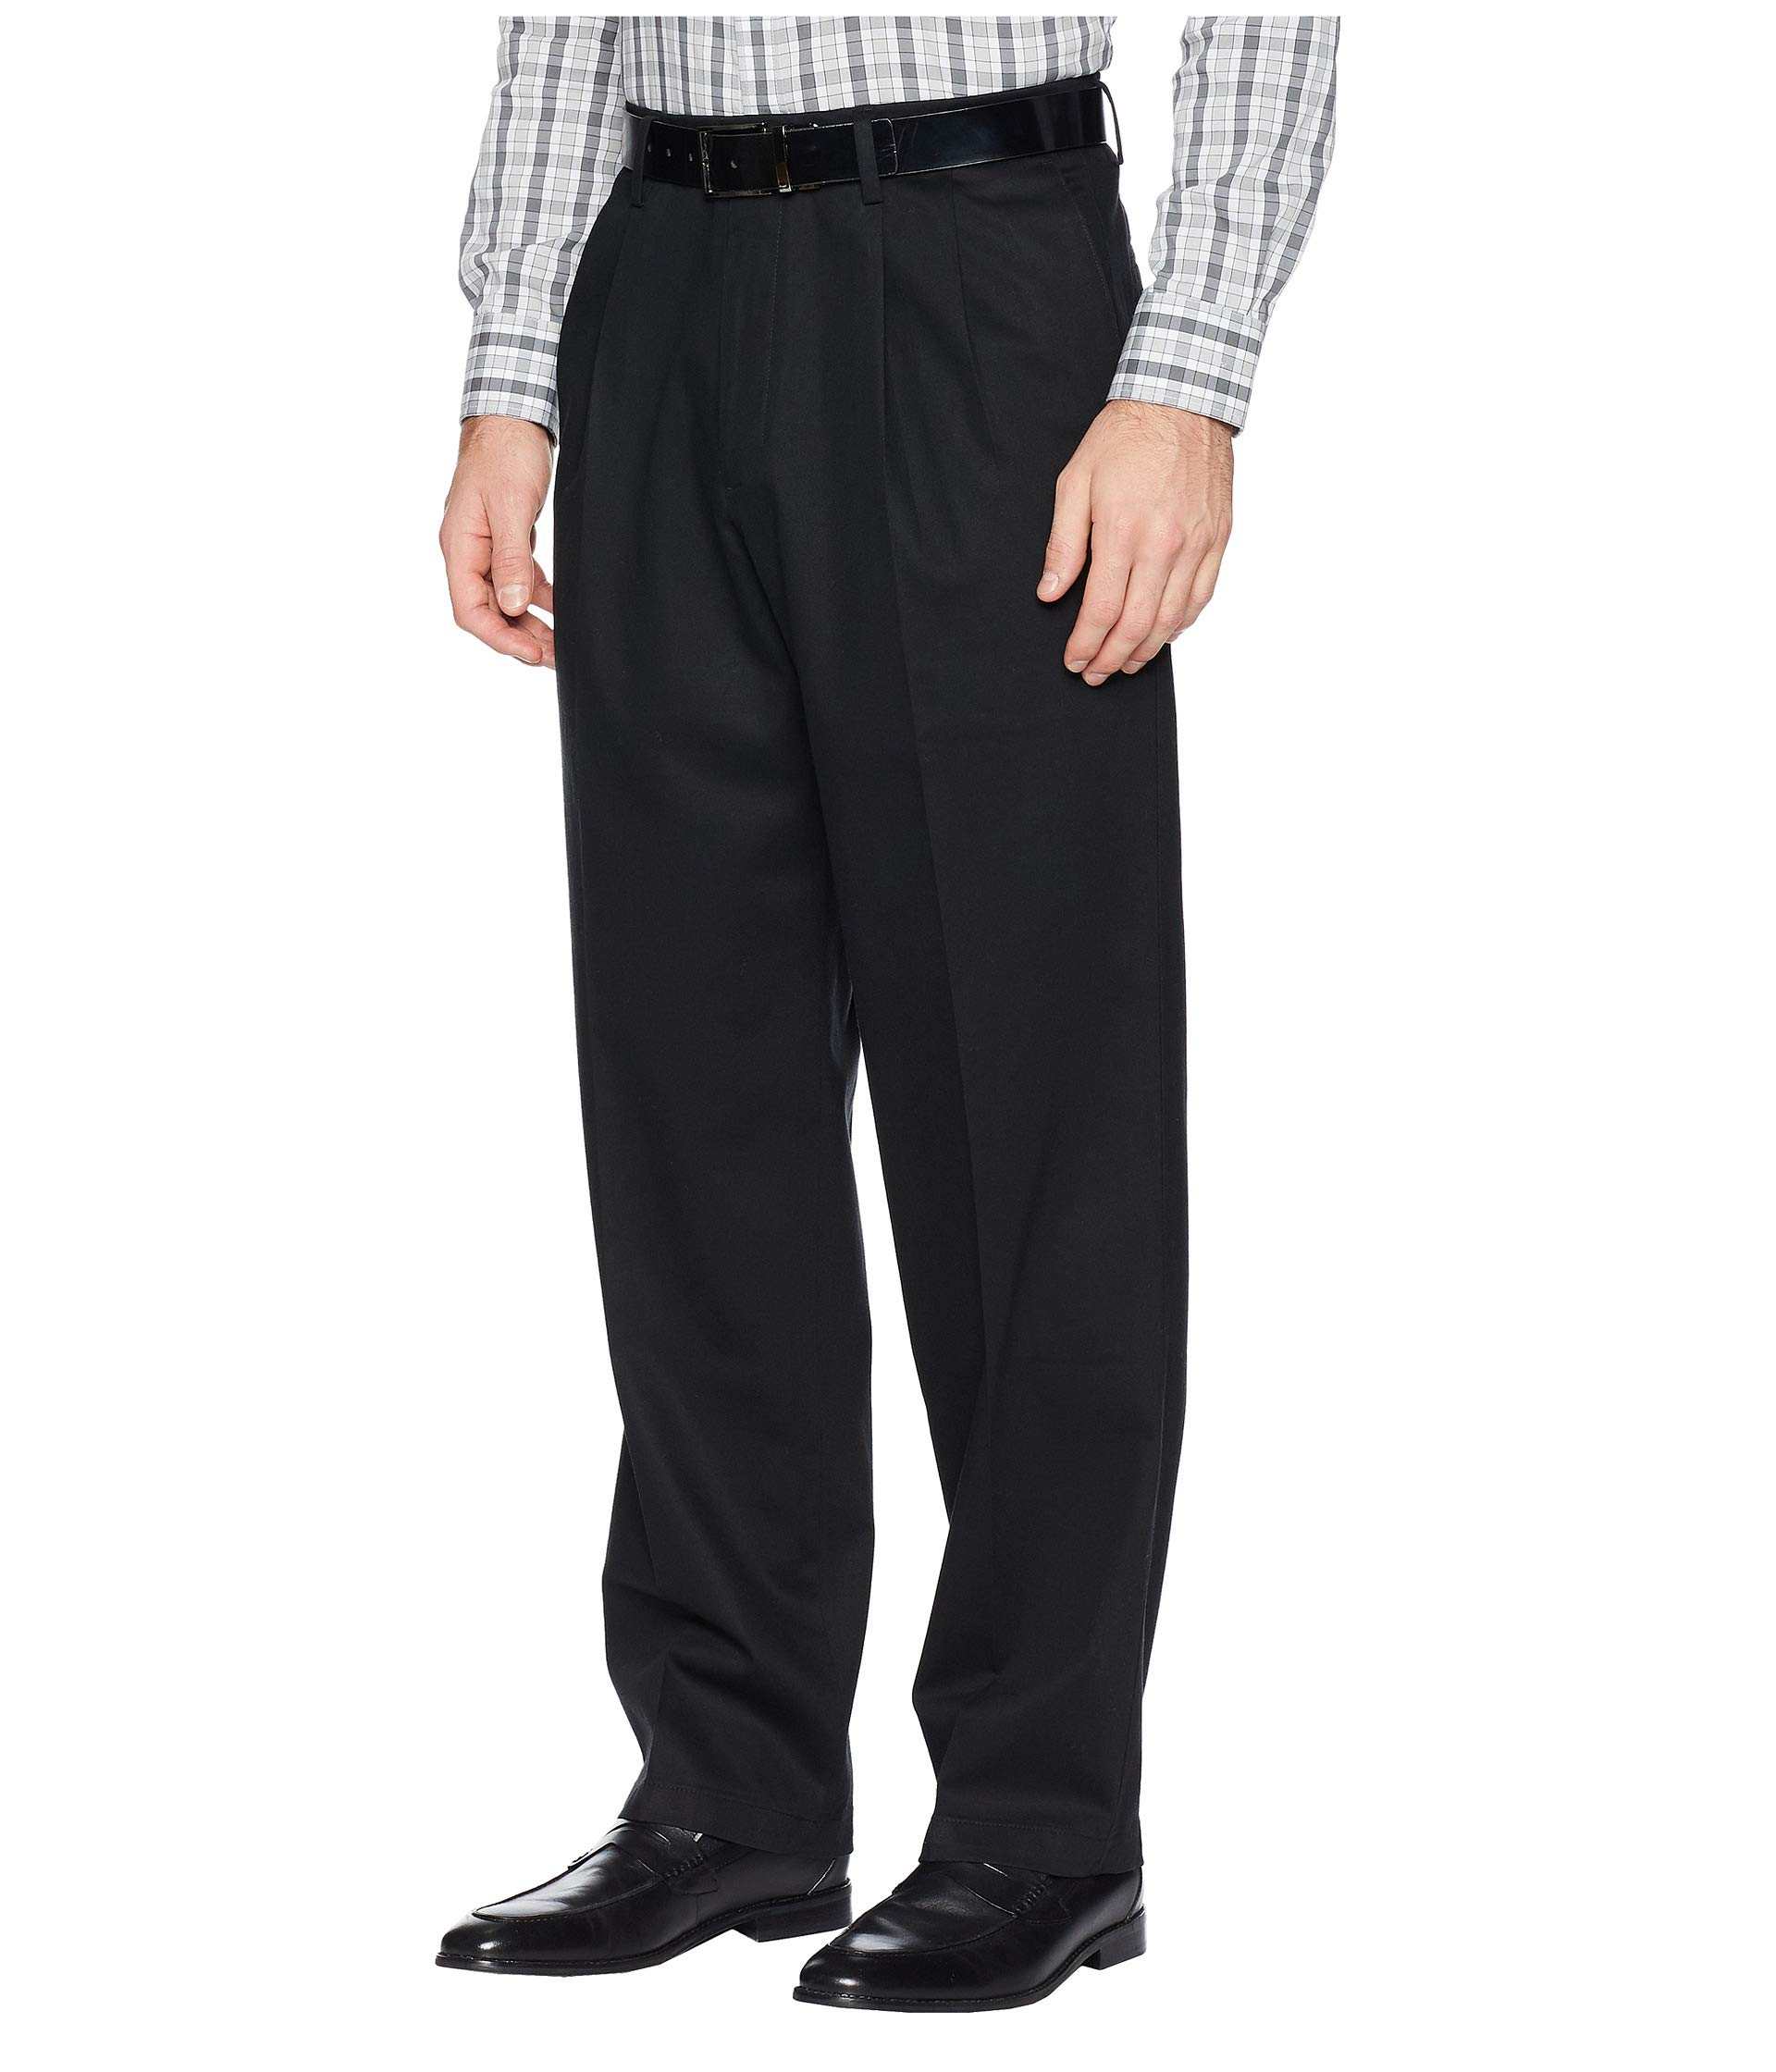 D4 Black Dockers Signature Cotton Stretch Pleated Khaki Pants Fit Lux Relaxed f8qA84